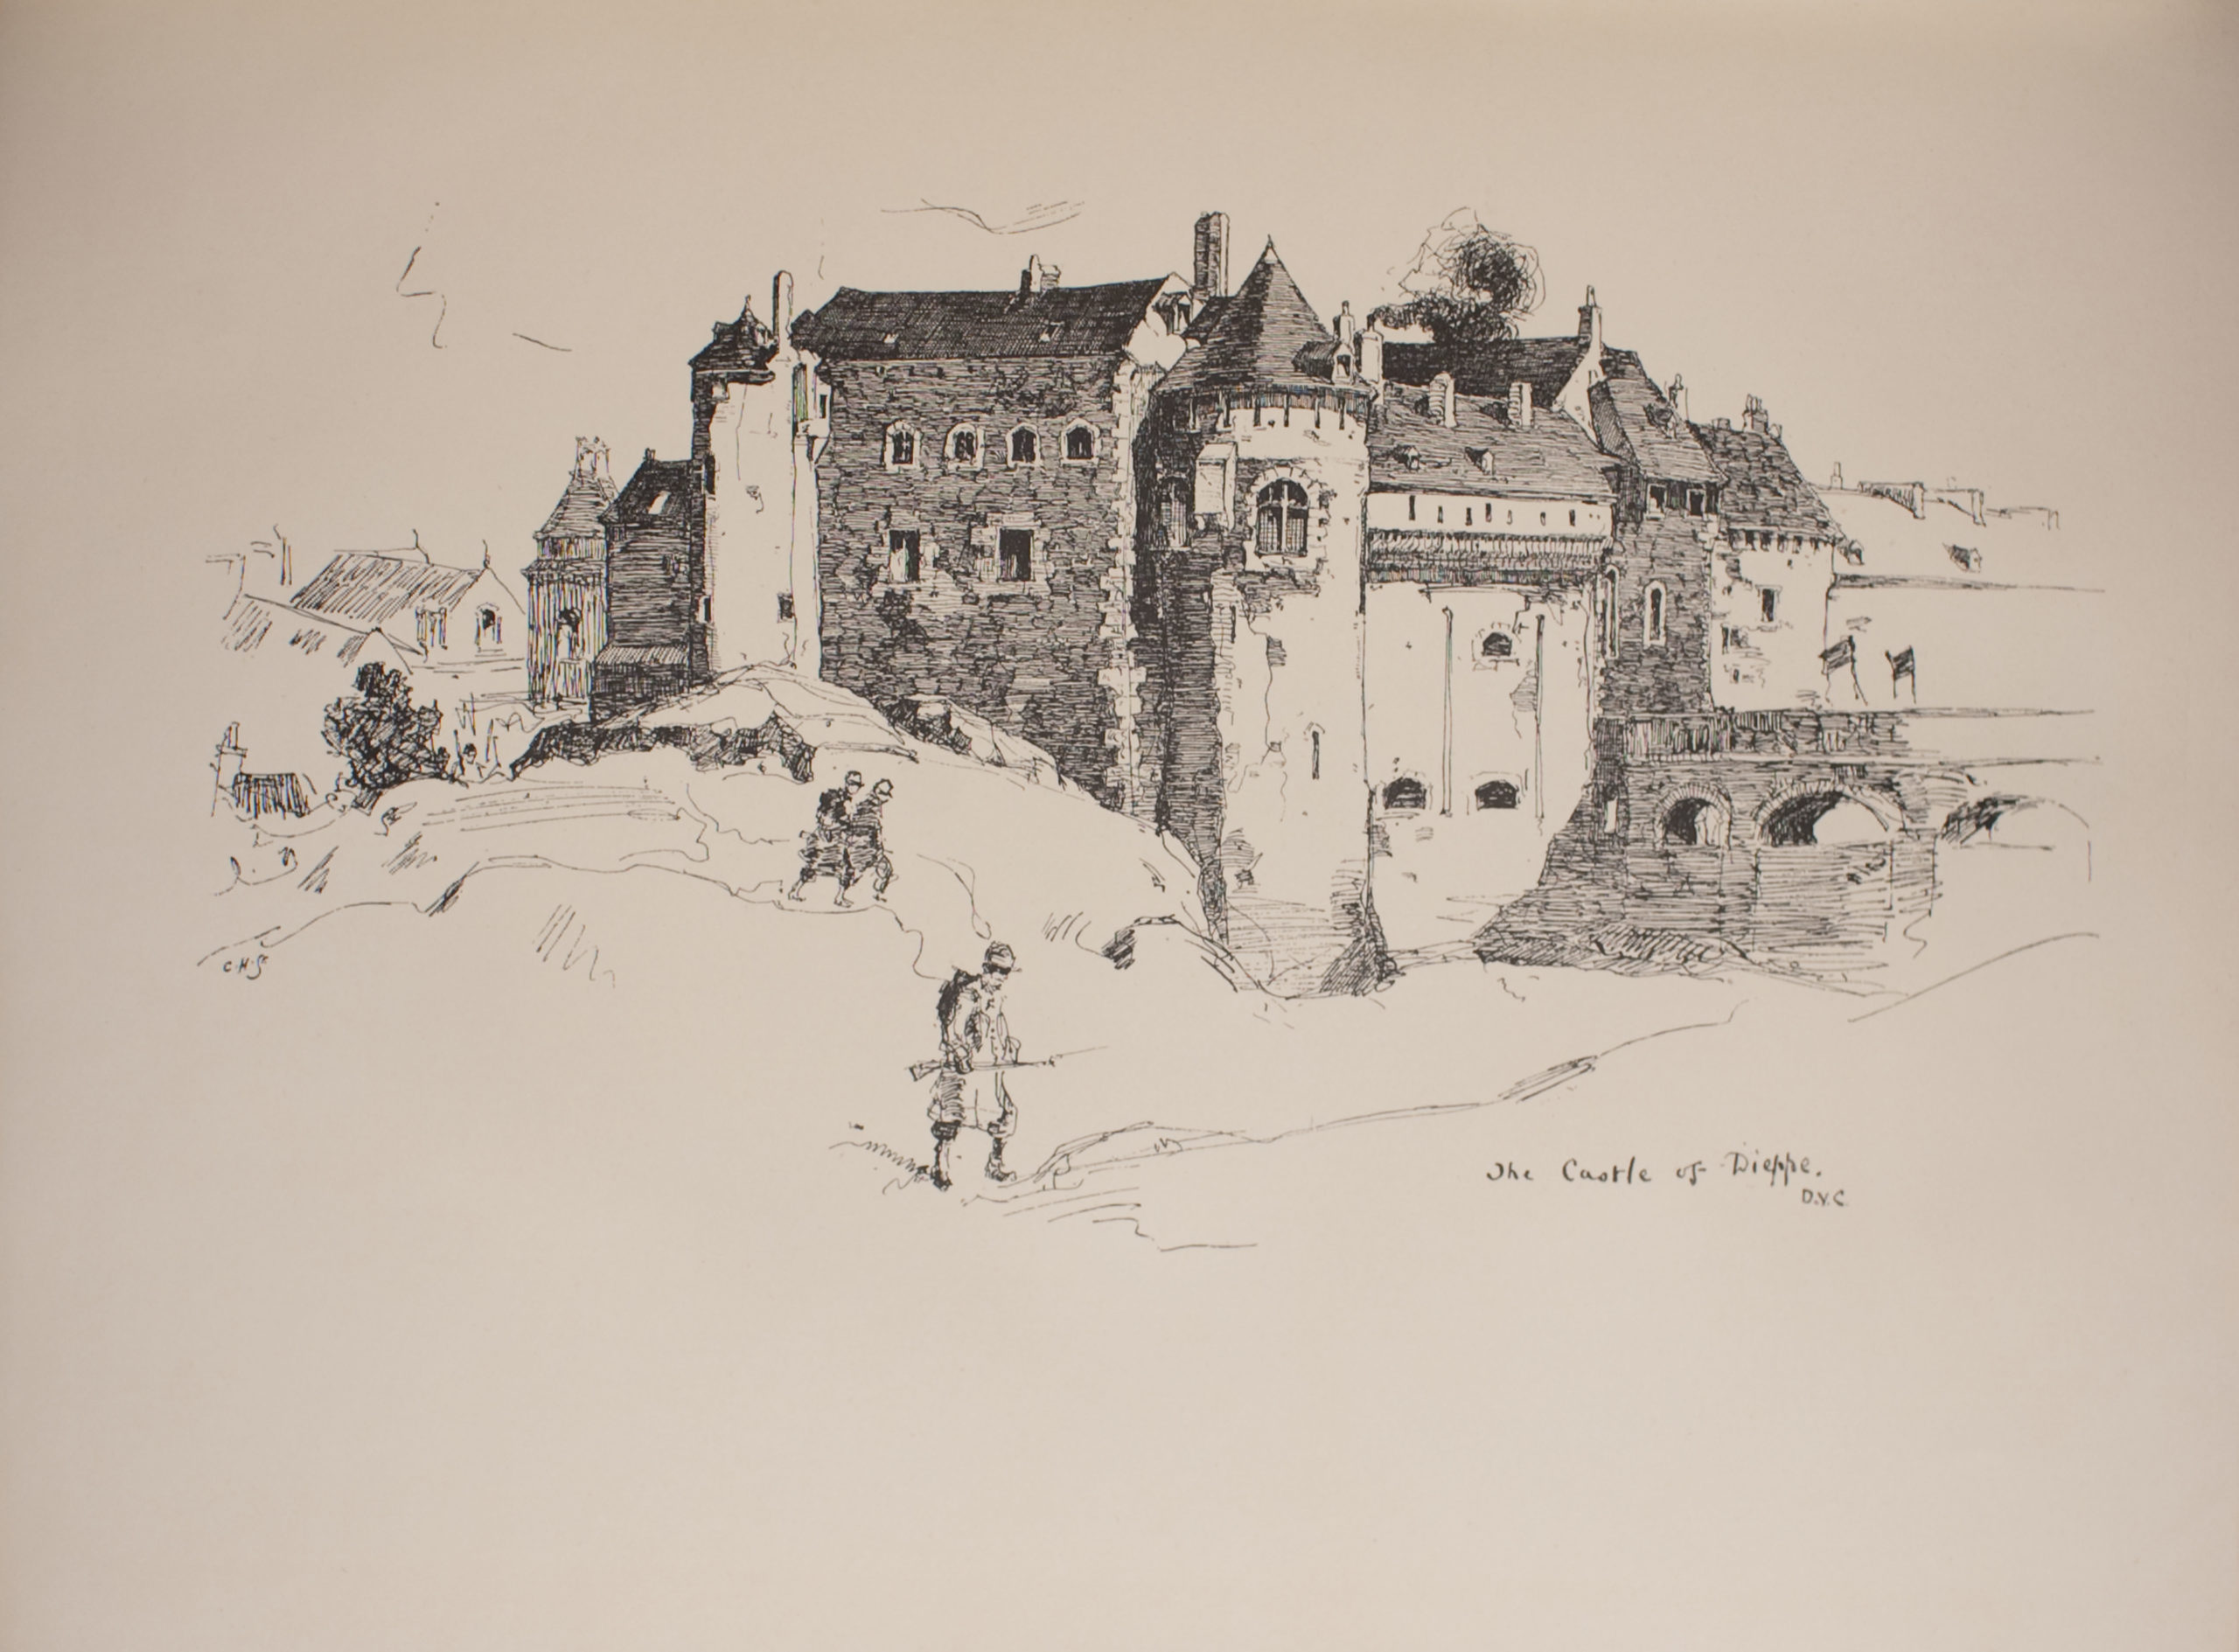 Image is of a castle with a moat on a hilly landscape A round tower is in the centre of the image dividing it in half horizontally It has two arched windows There is a smoking chimney to the right of the tower To the left there is another round tower it is at the back of the building In the left background are the outlines of several smaller buildings Most of the castle has arched windows though a few are rectangular There are some noticeable cracks and paint chipping on the castle walls To the right of the centre tower is a bridge with three arches In the foreground are three figures wearing military regalia The figure in the centre foreground also has a weapon The background is open and undefined The name and artist of the image The Castle of Dieppe DYC are in the bottom right corner The engraver's initials C H Sc are in the middle left The image is horizontally displayed